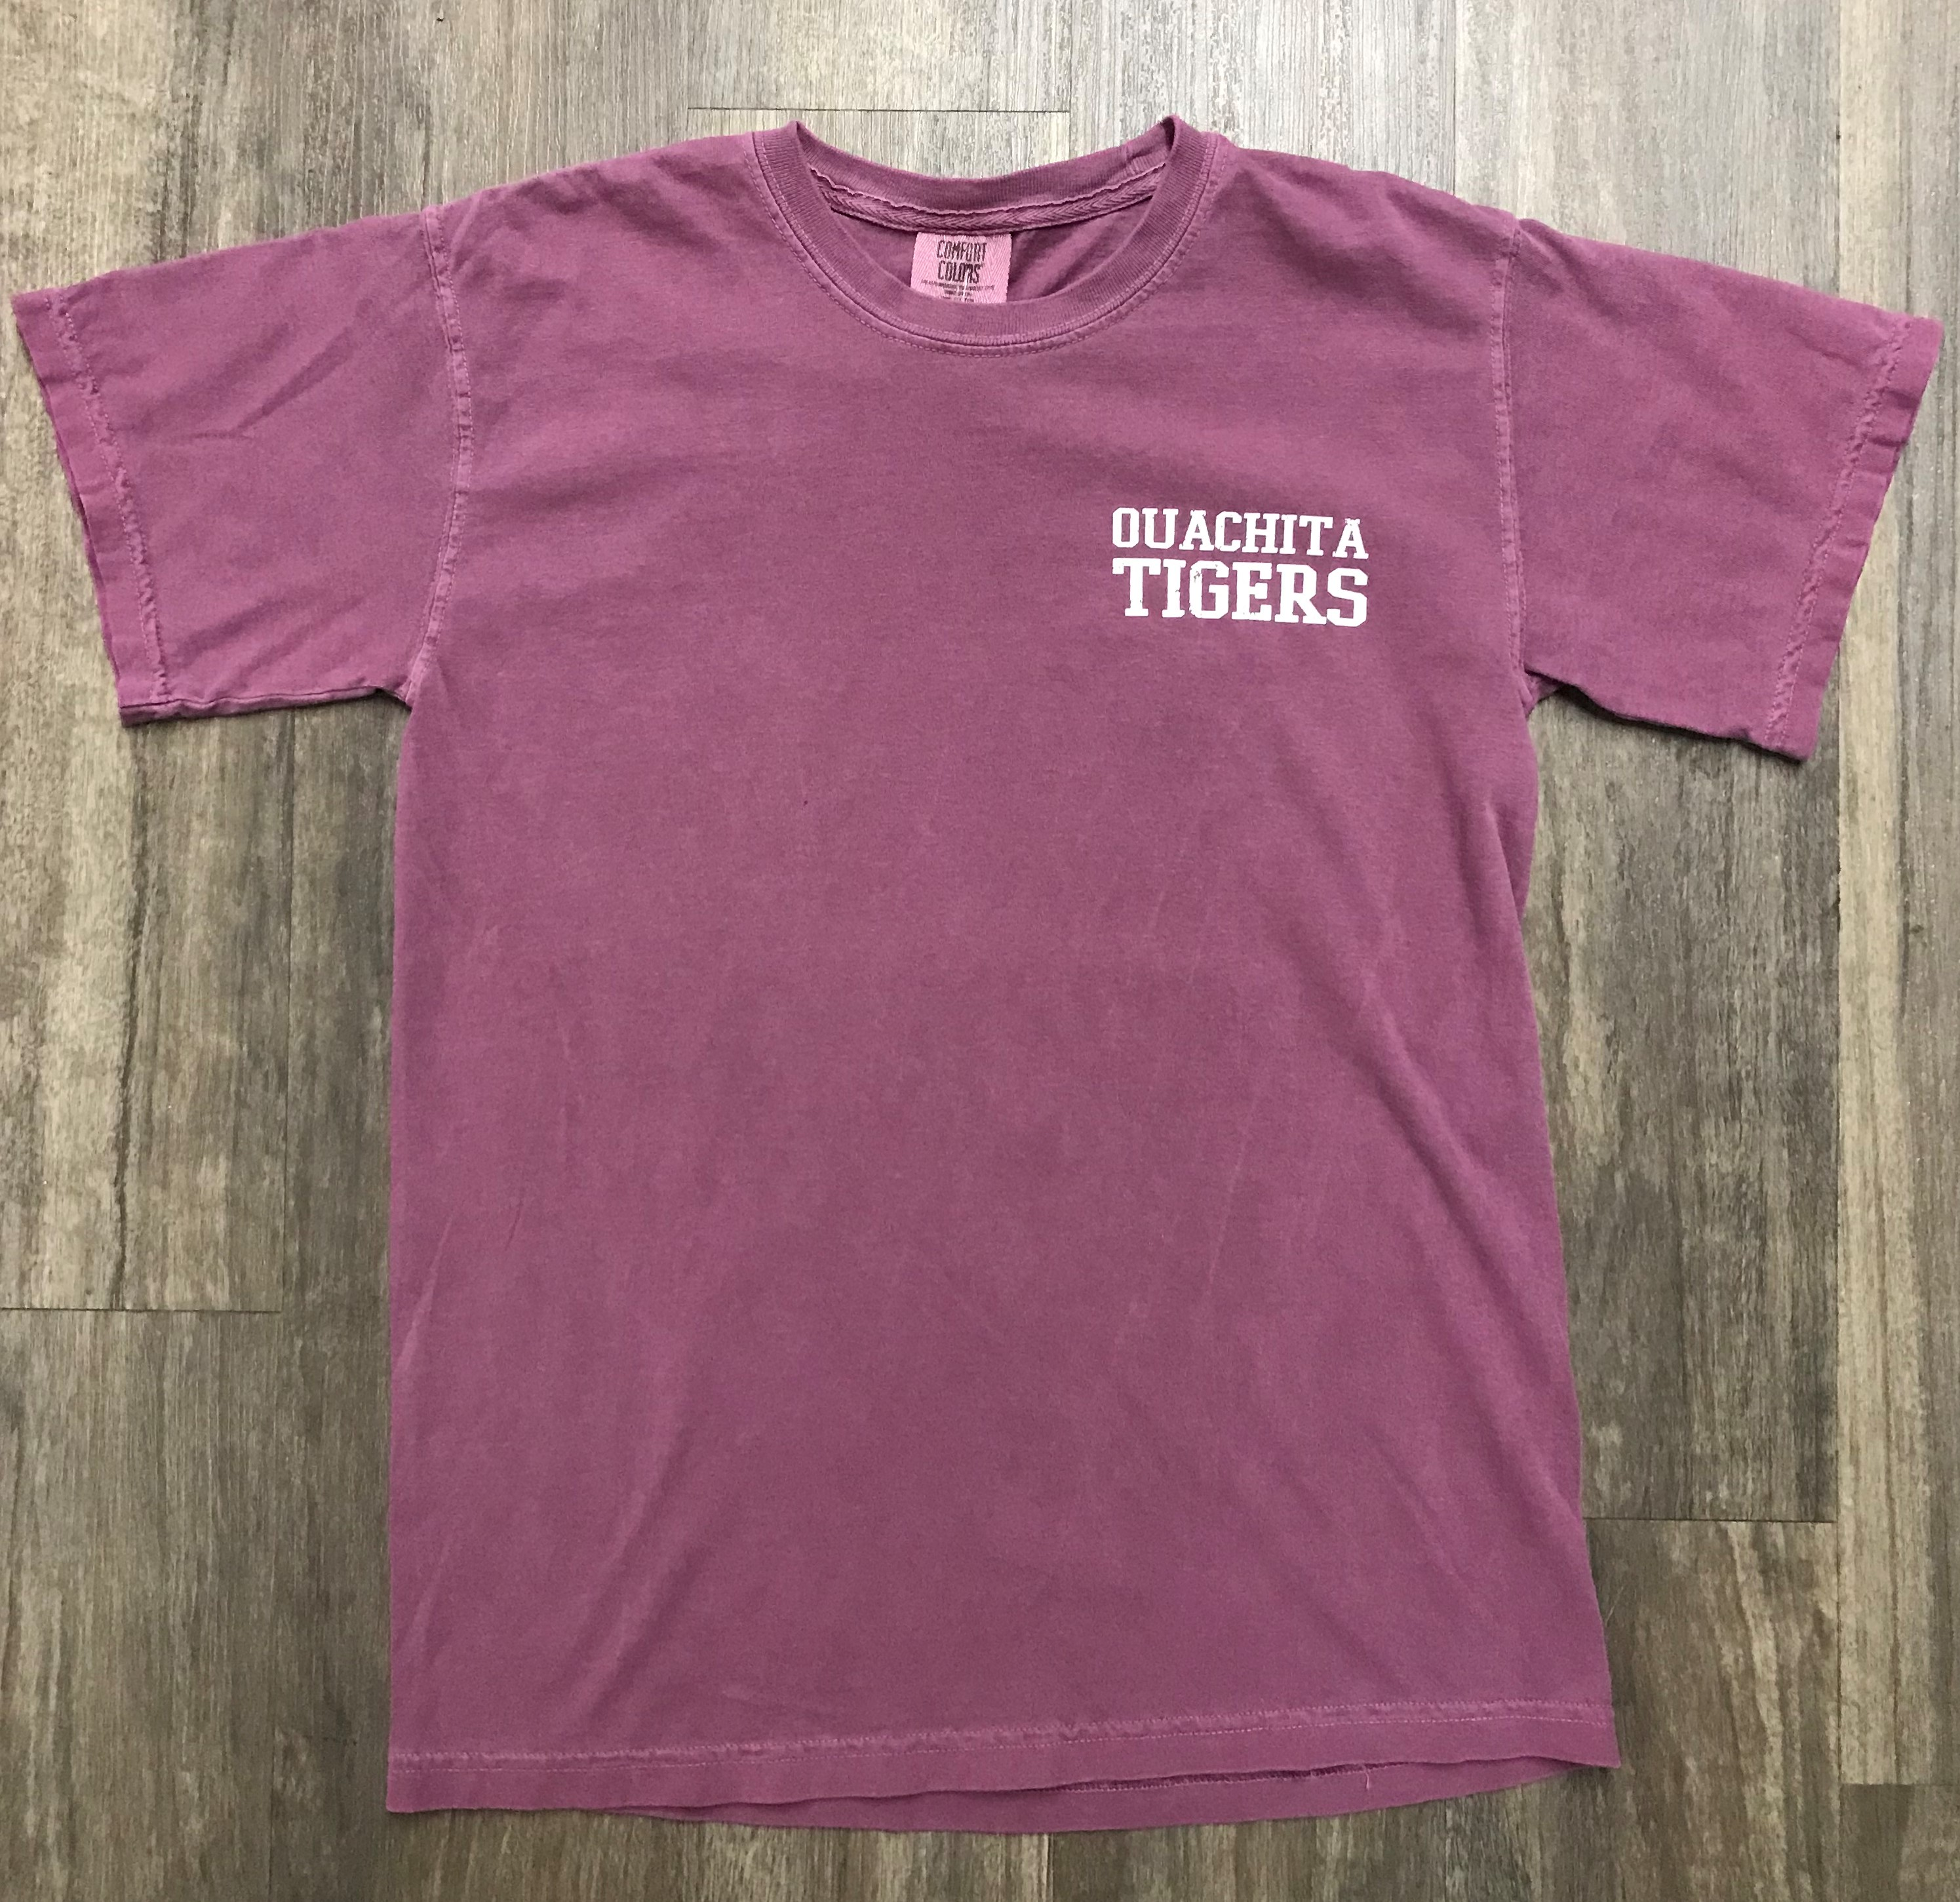 OUACHITA TIGERS SS COMFORT COLOR TEE